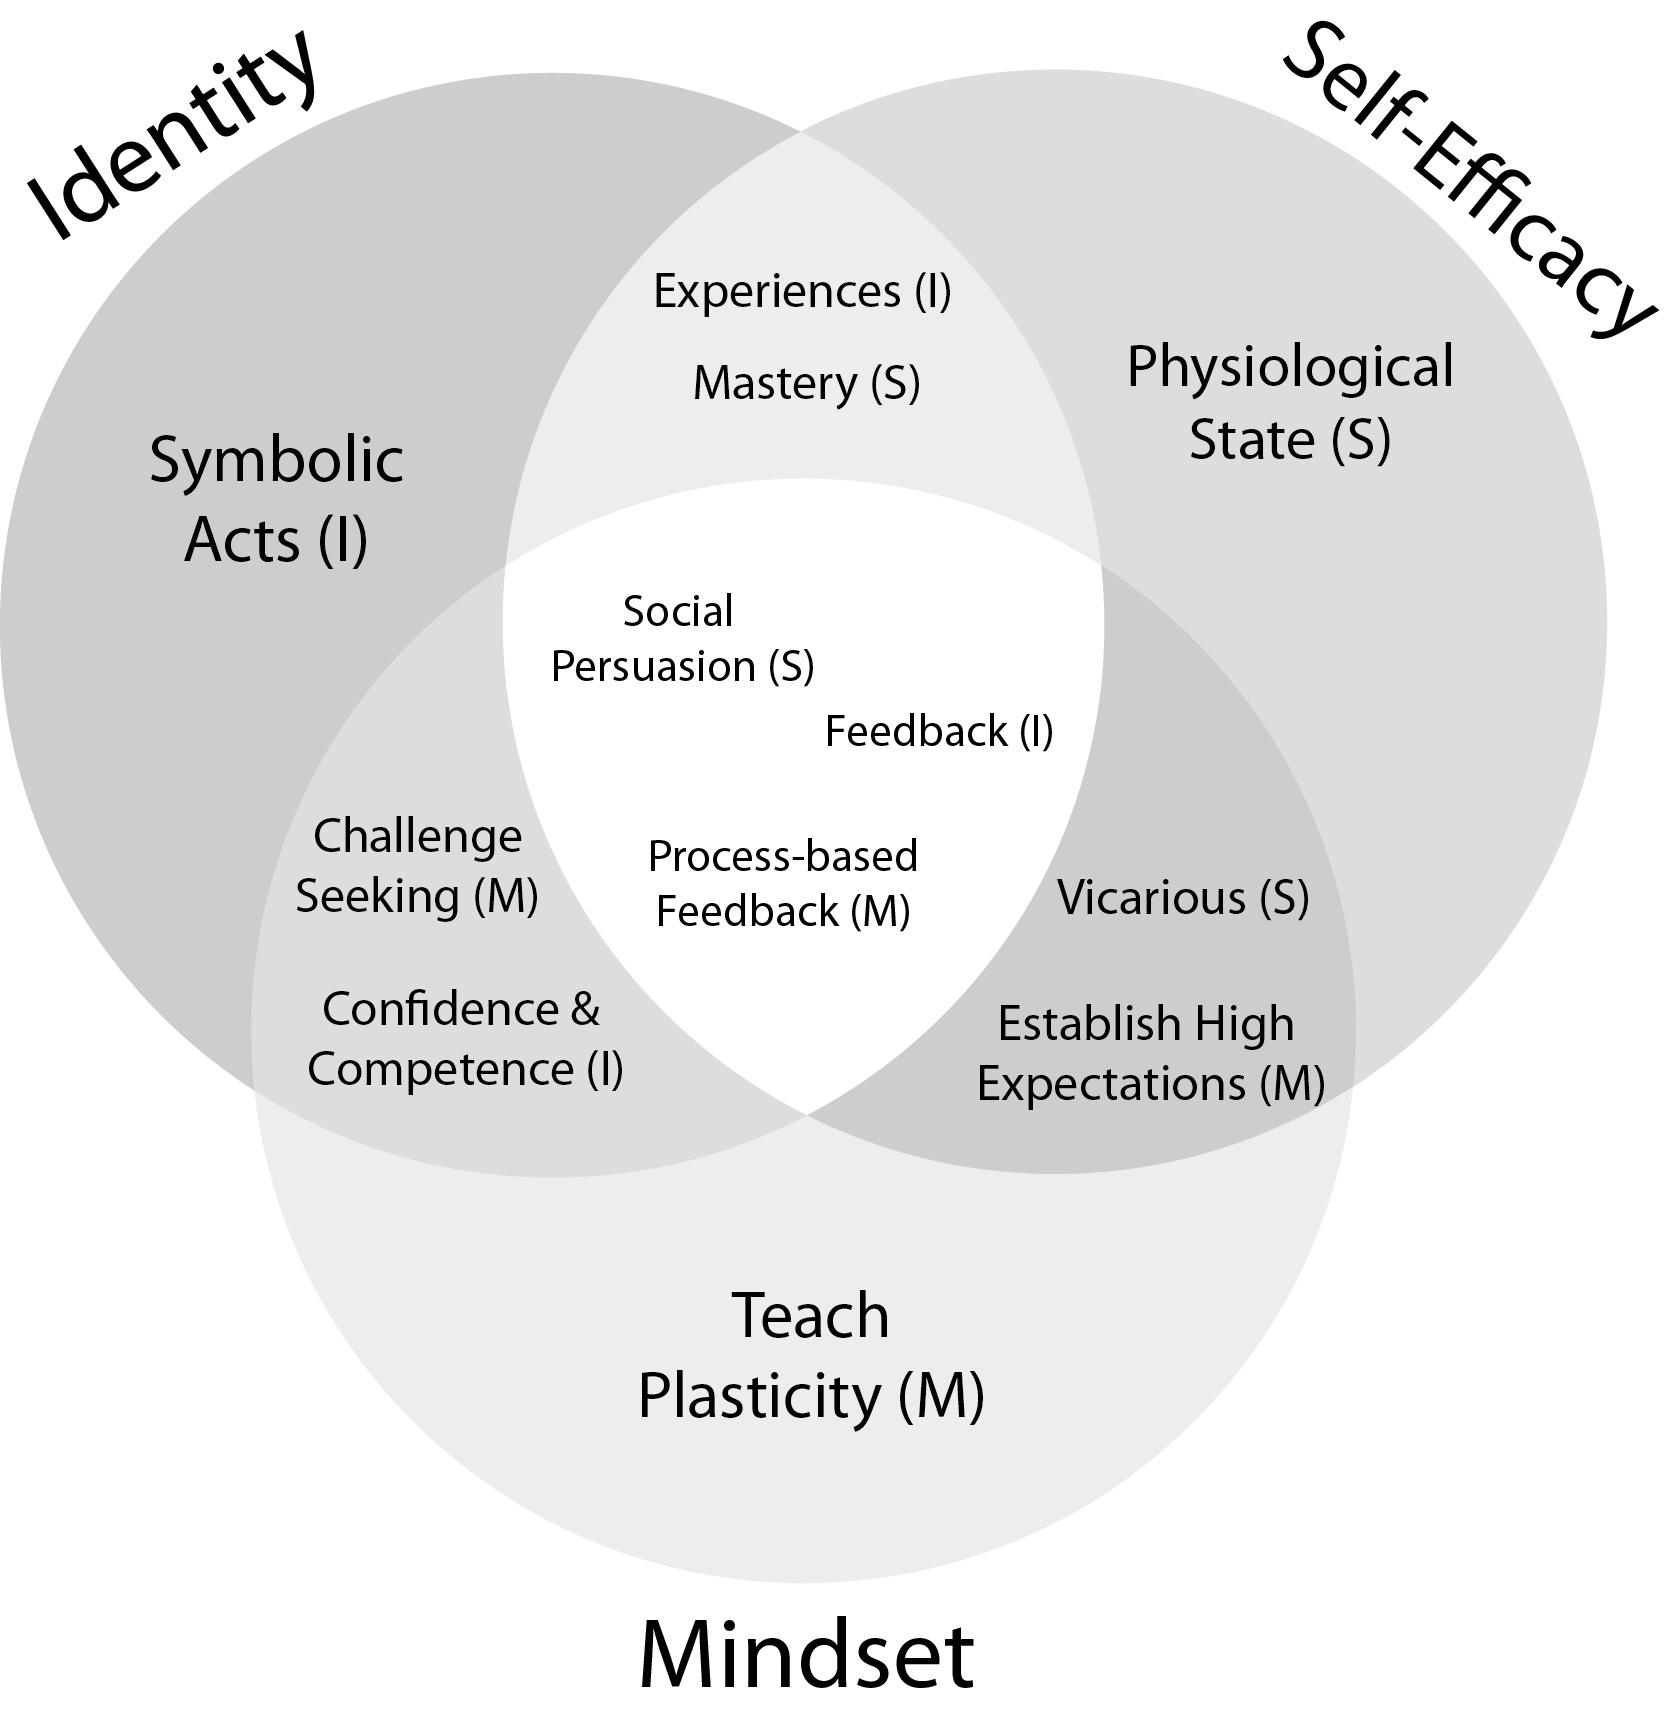 Venn diagram of the overlapping elements of the theories of identity, self-efficacy, and mindsets.